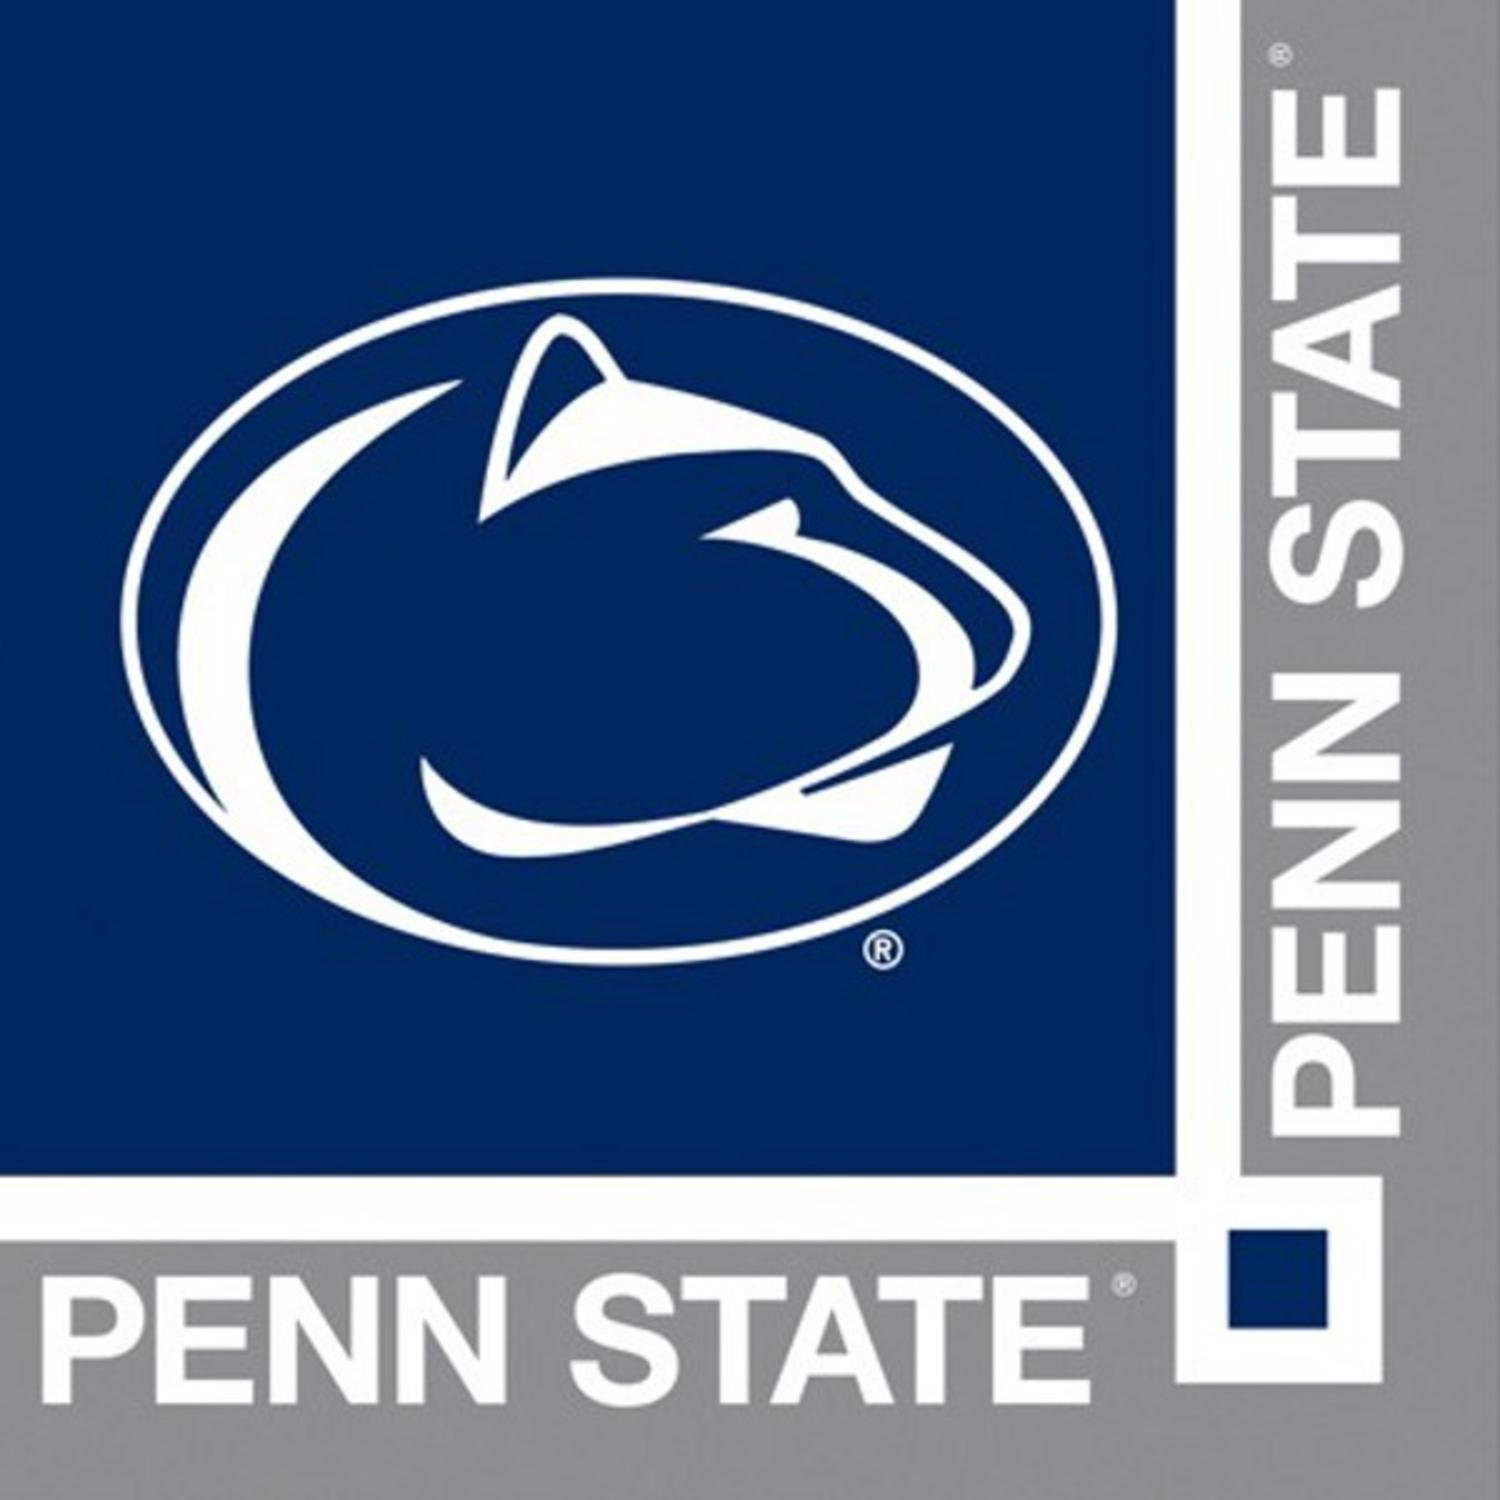 240 NCAA Penn State Nittany Lions 2-ply Tailgating Party Beverage Napkins B00E4UGH1S